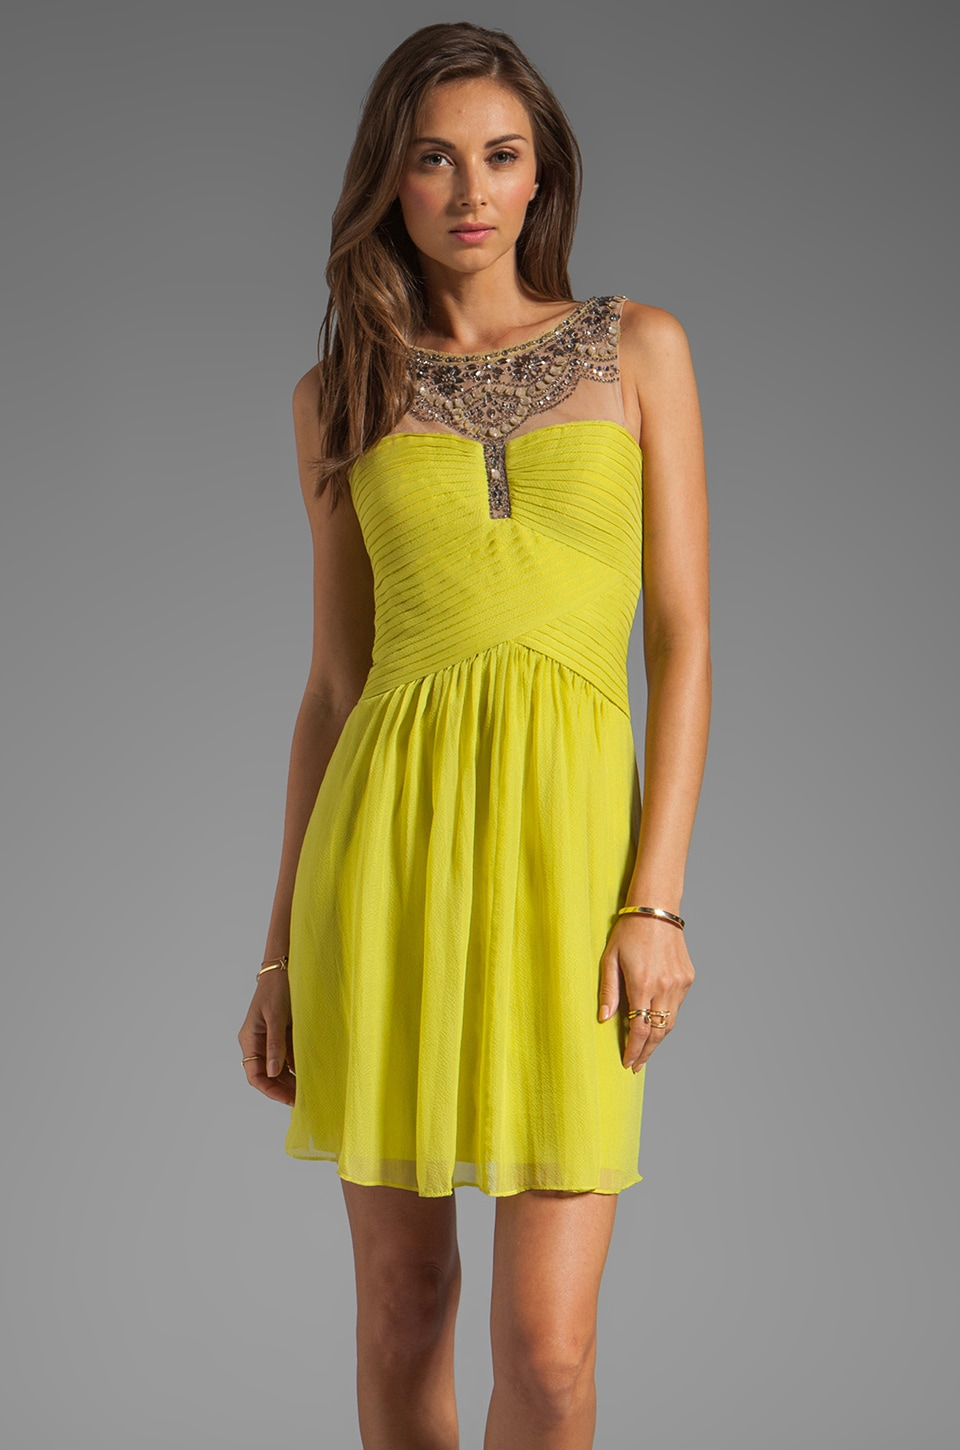 BCBGMAXAZRIA Combo Dress in Lemongrass